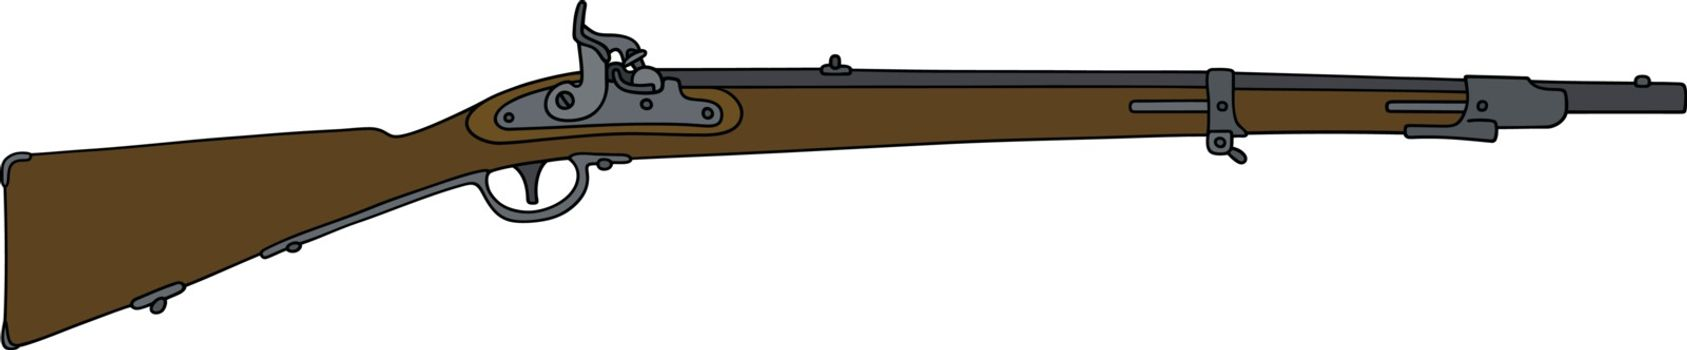 The vintage military rifle